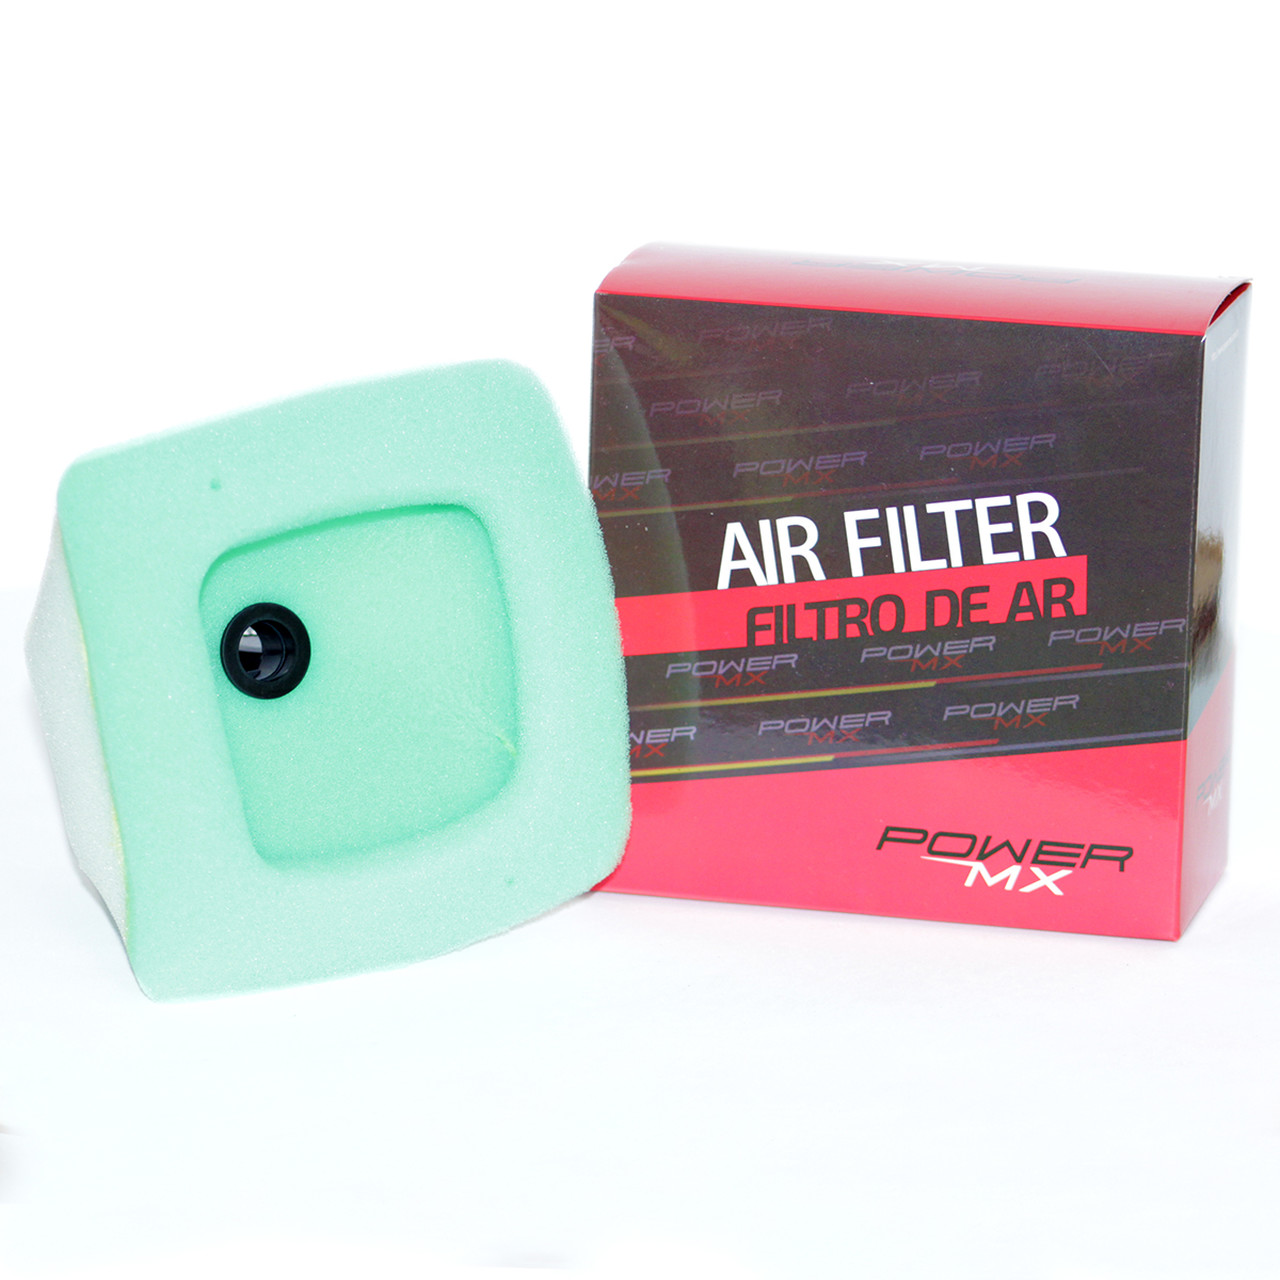 Filtro de Ar CRF 230 Power MX